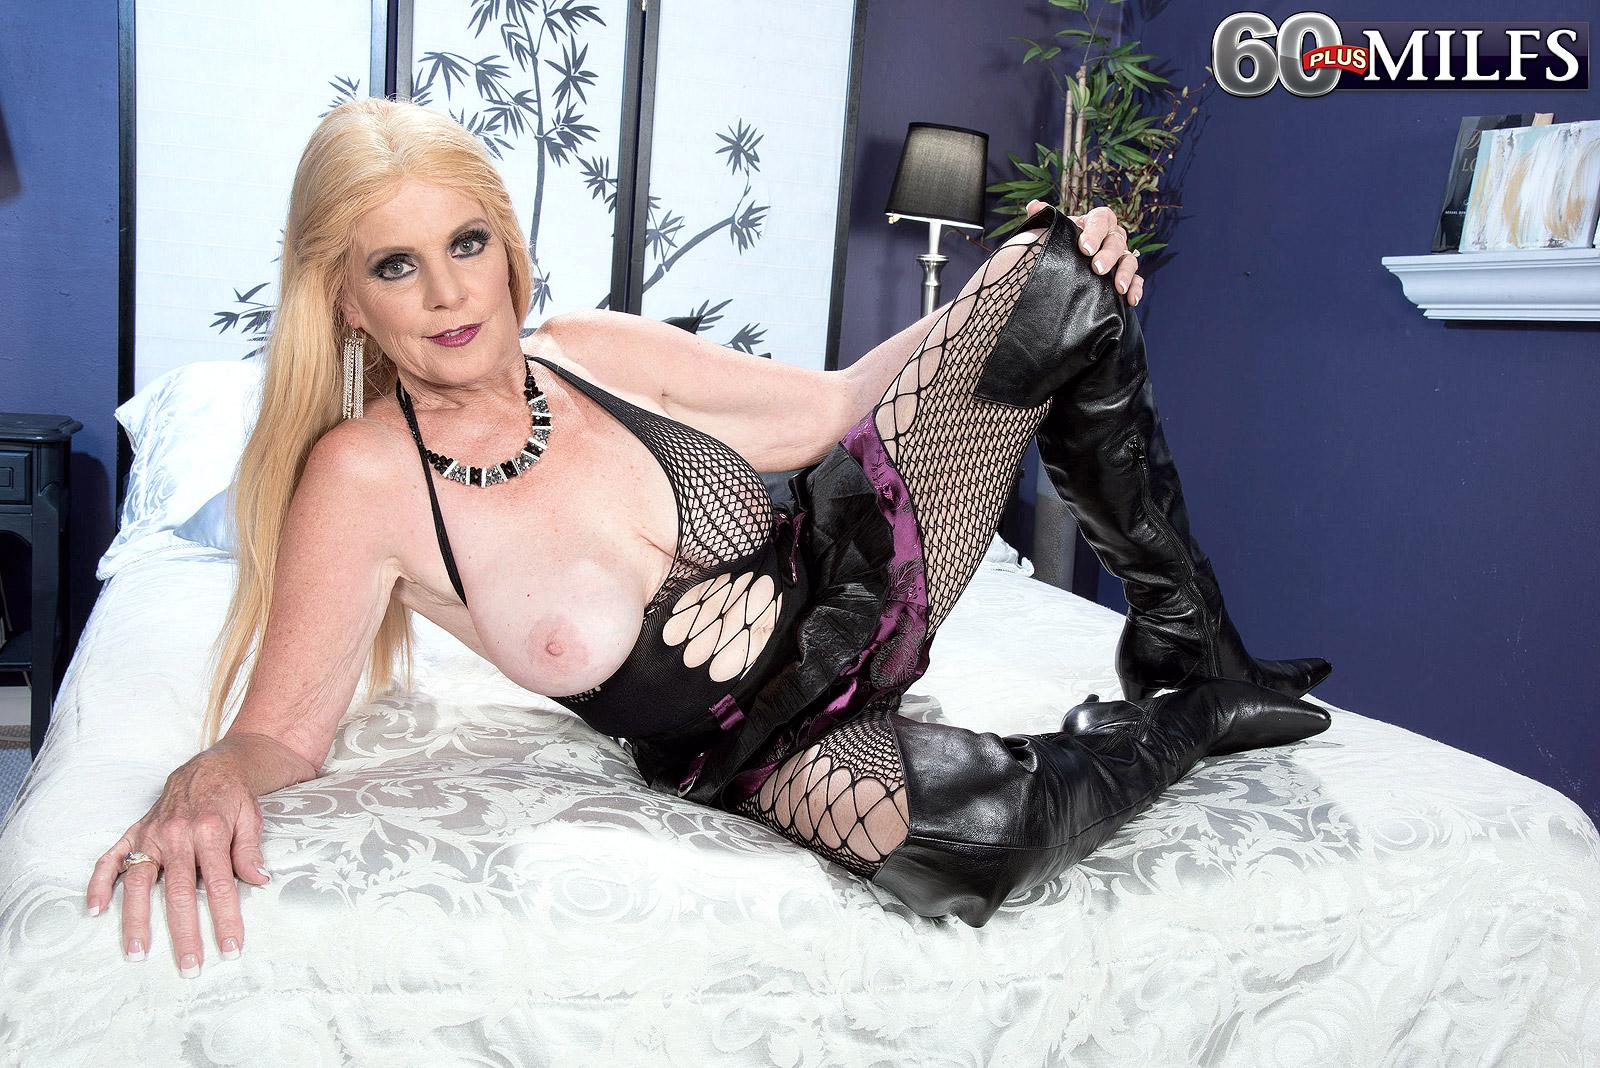 Golden-haired grannie Charlie unleashes her hefty boobies in over the knee boots and fishnet body-suit